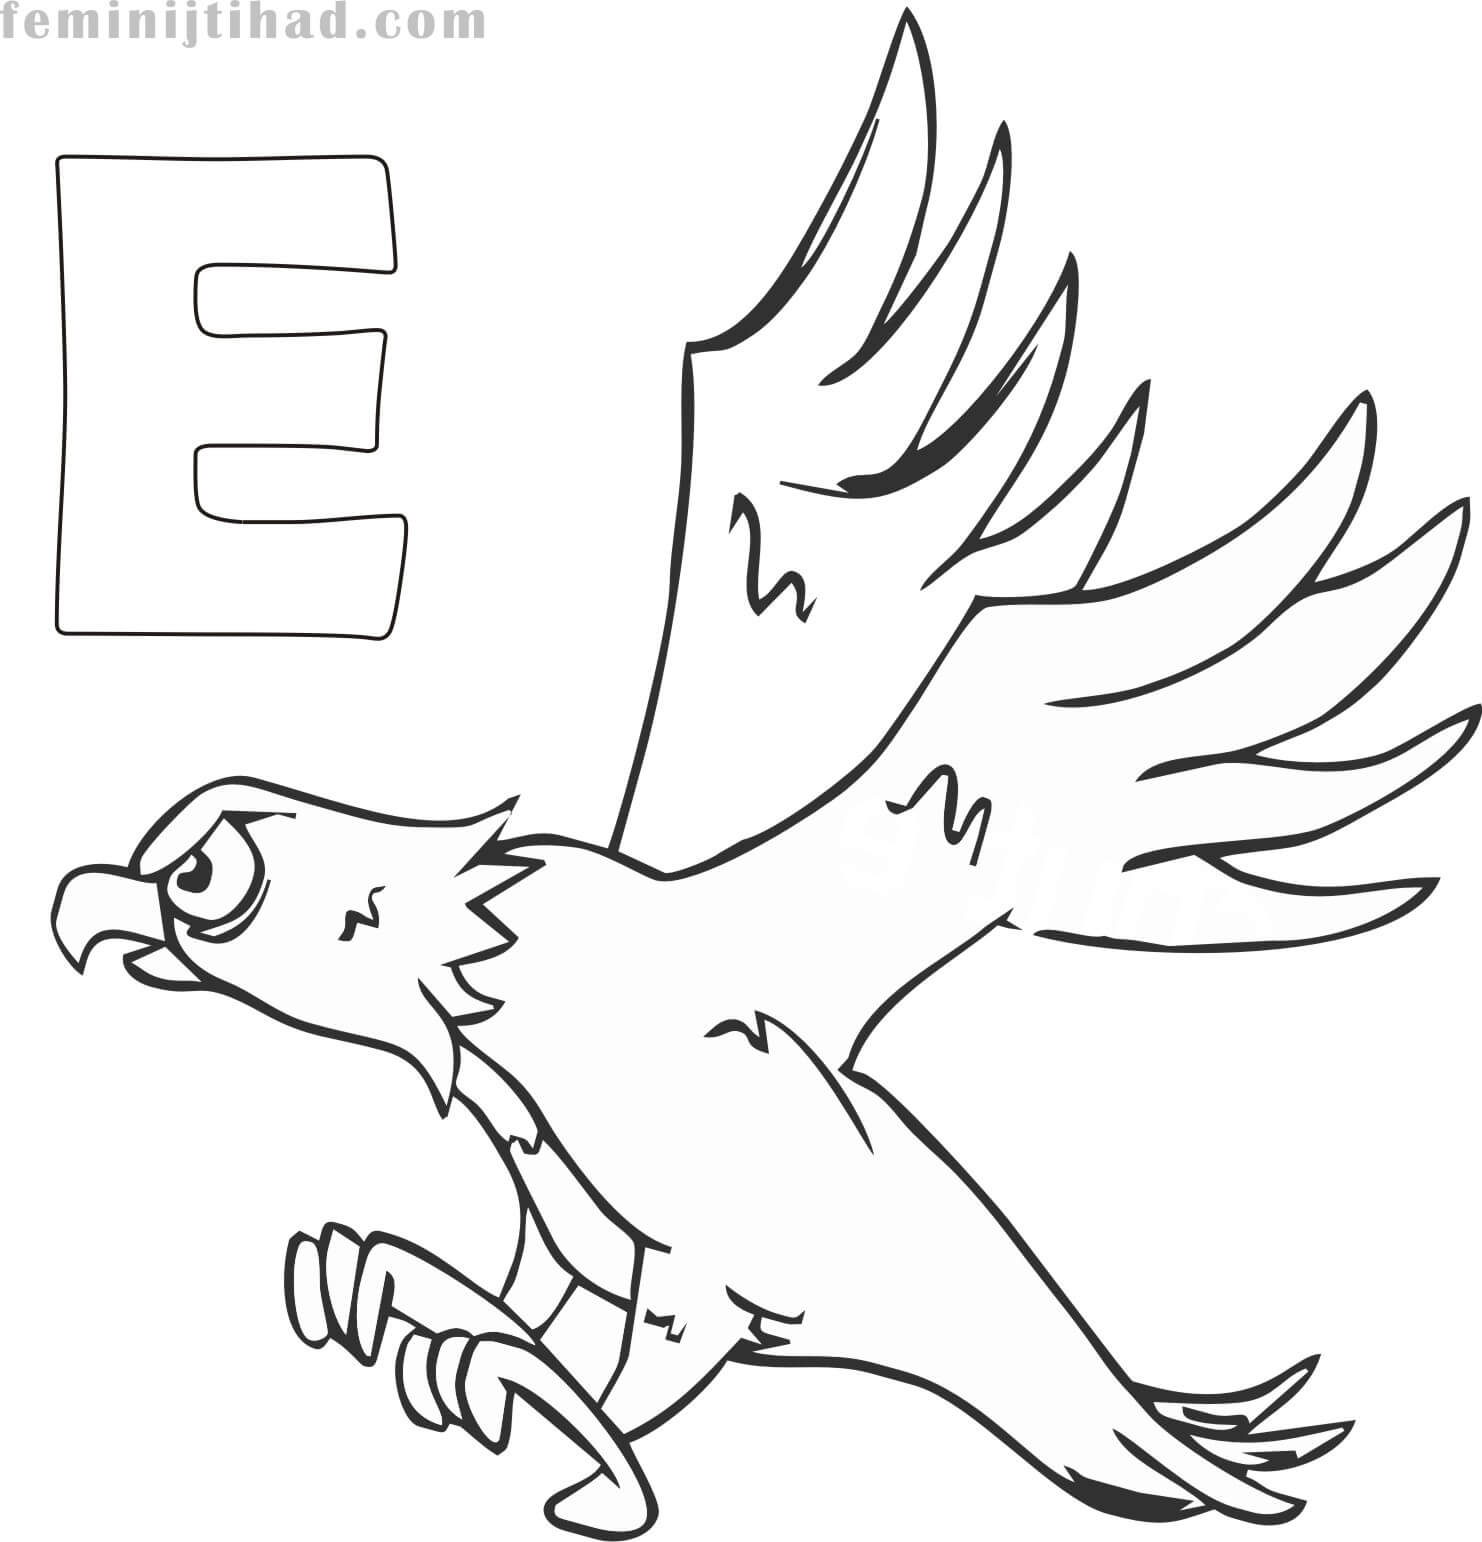 1482x1542 Eagle Coloring Pages Printable Coloring Pages For Kids